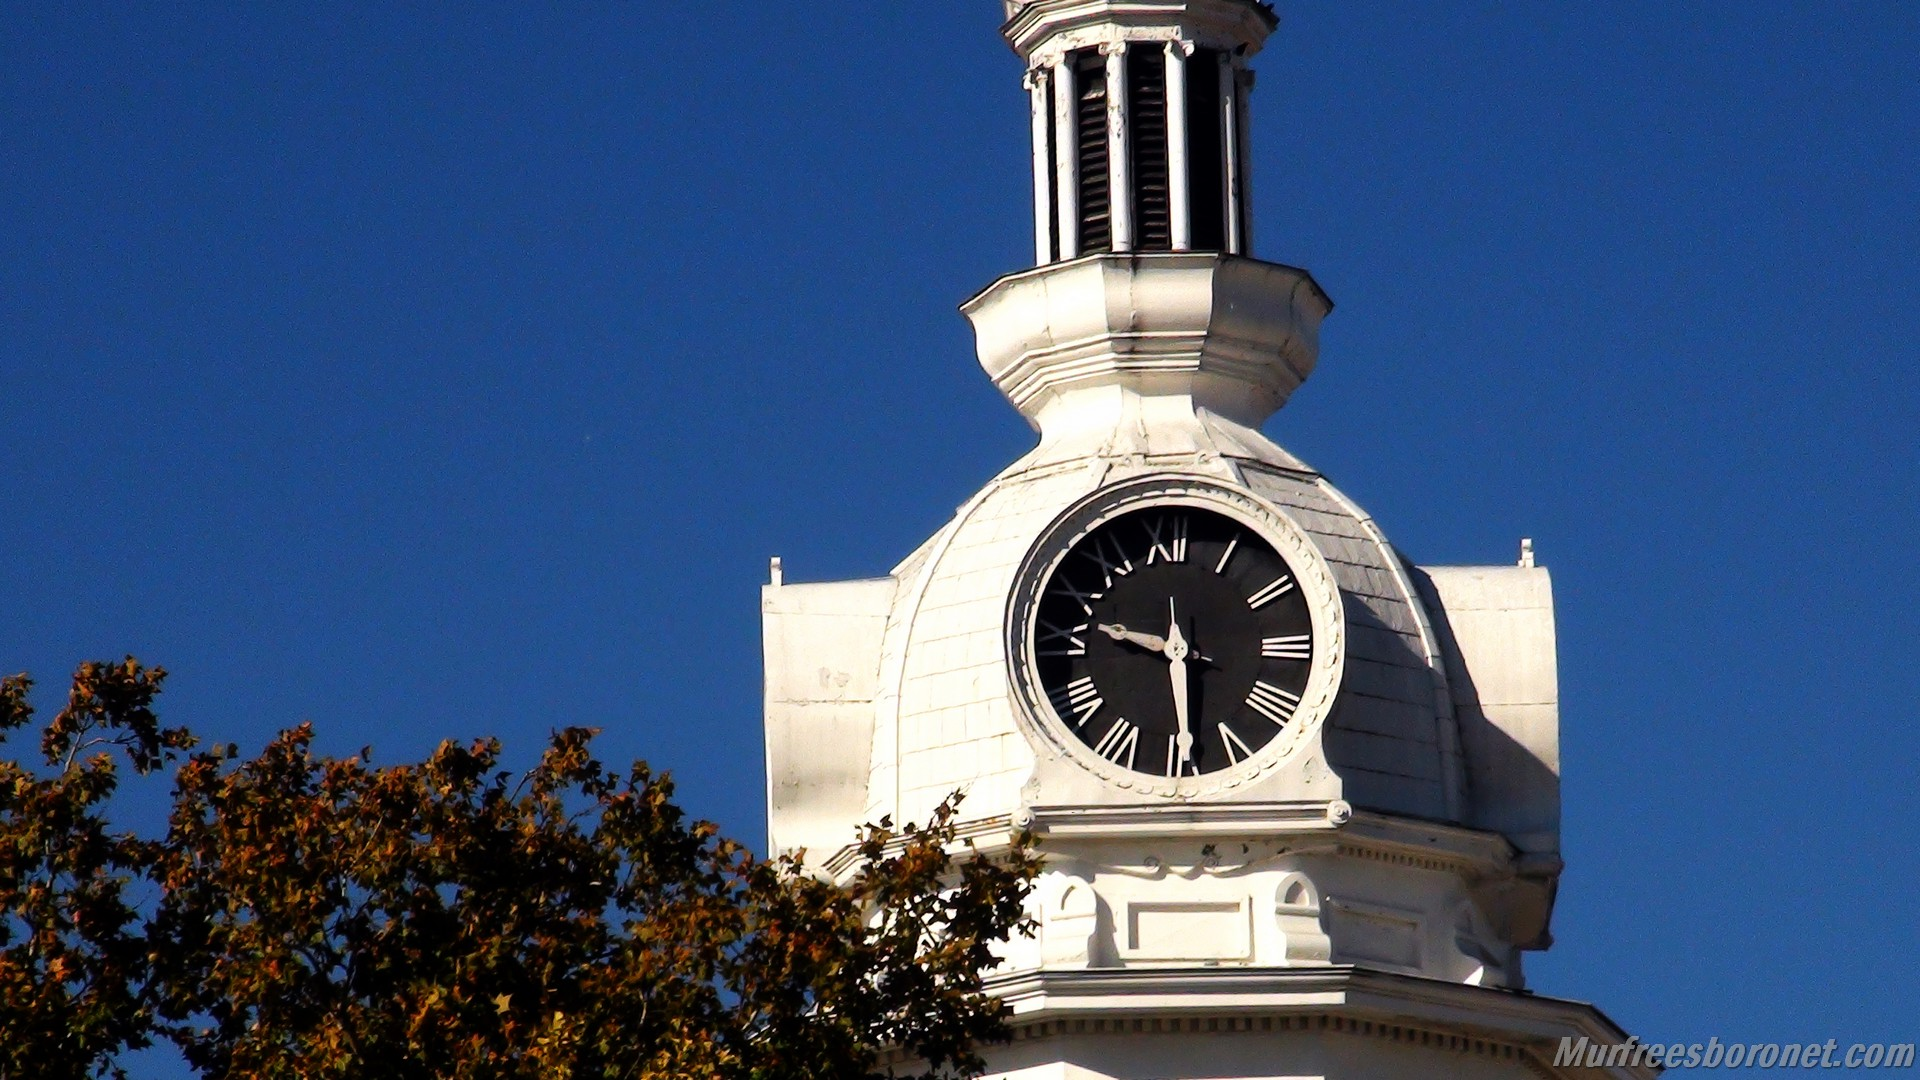 Courthouse Cupola Clock Tower 1 Murfreesboro Public Square Fall 2012 Images